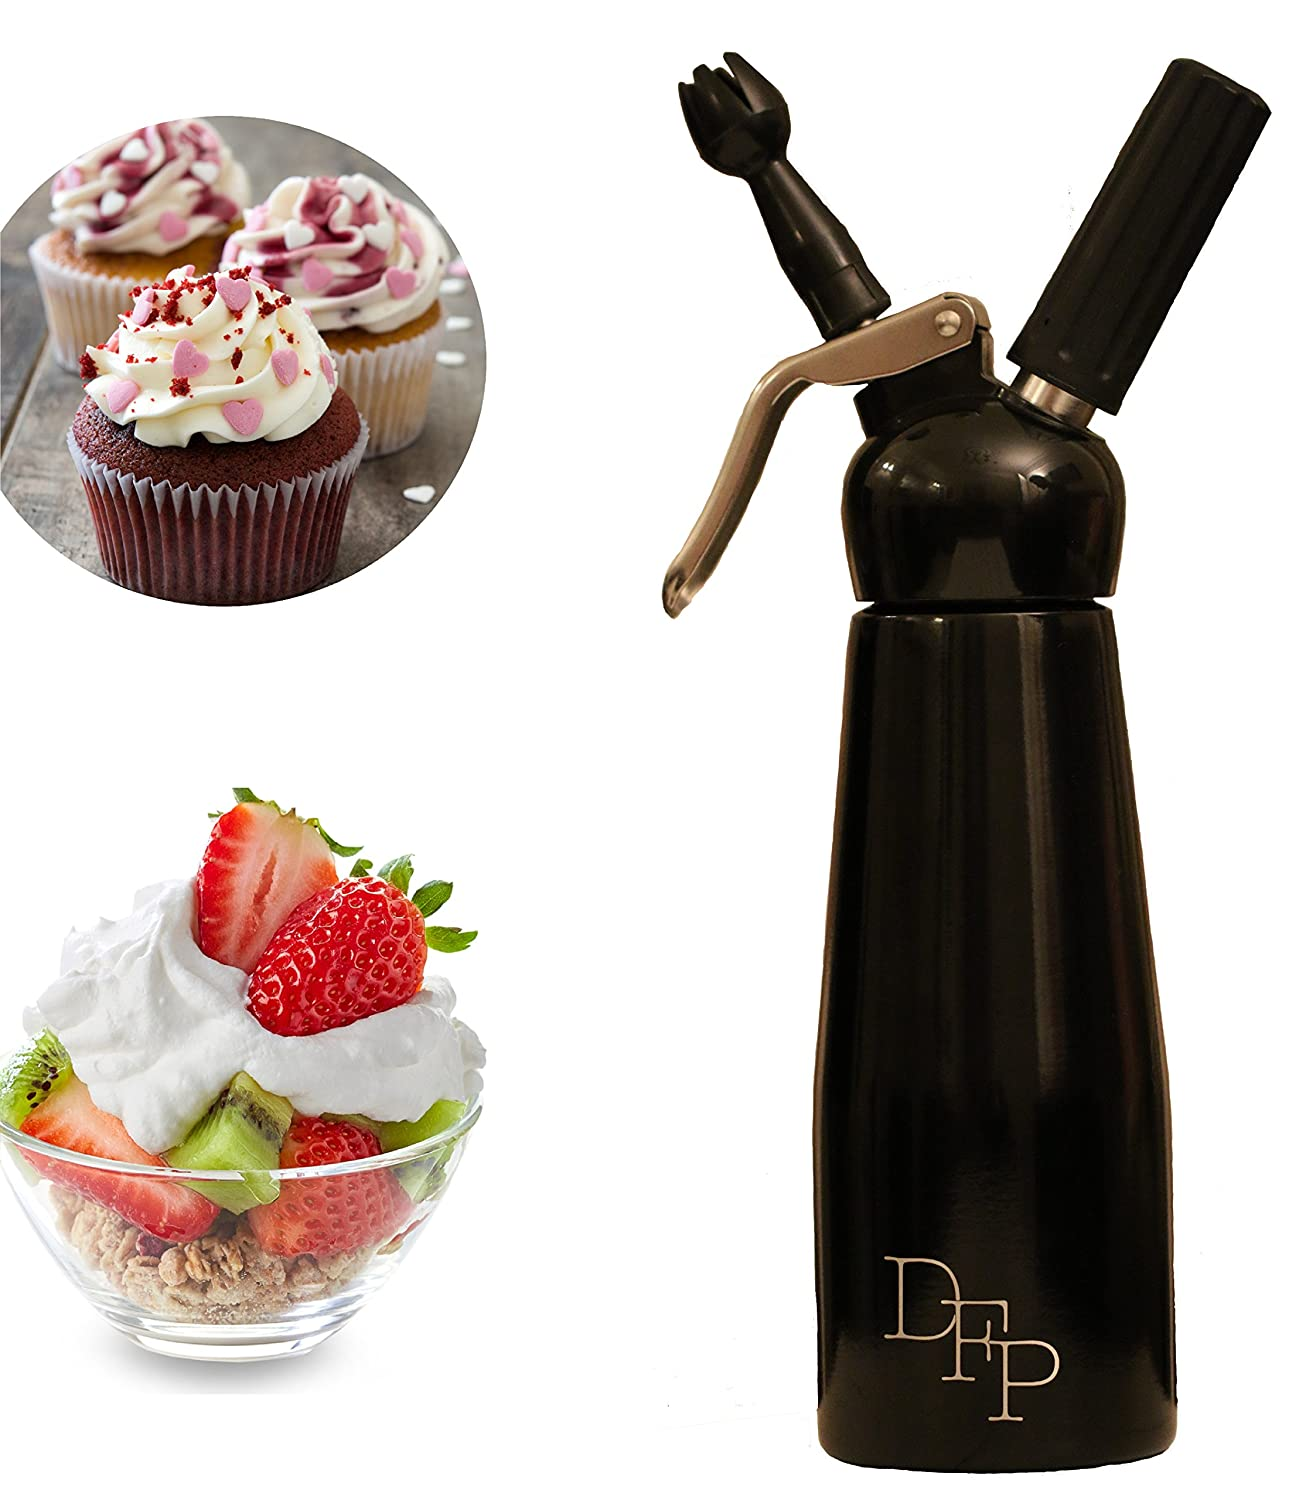 DFP Whipped Cream Dispenser; Mousse Siphon, with 3 Decorating Nozzles 500ml - Sleek Black Hangzhou Wosheng Machinery